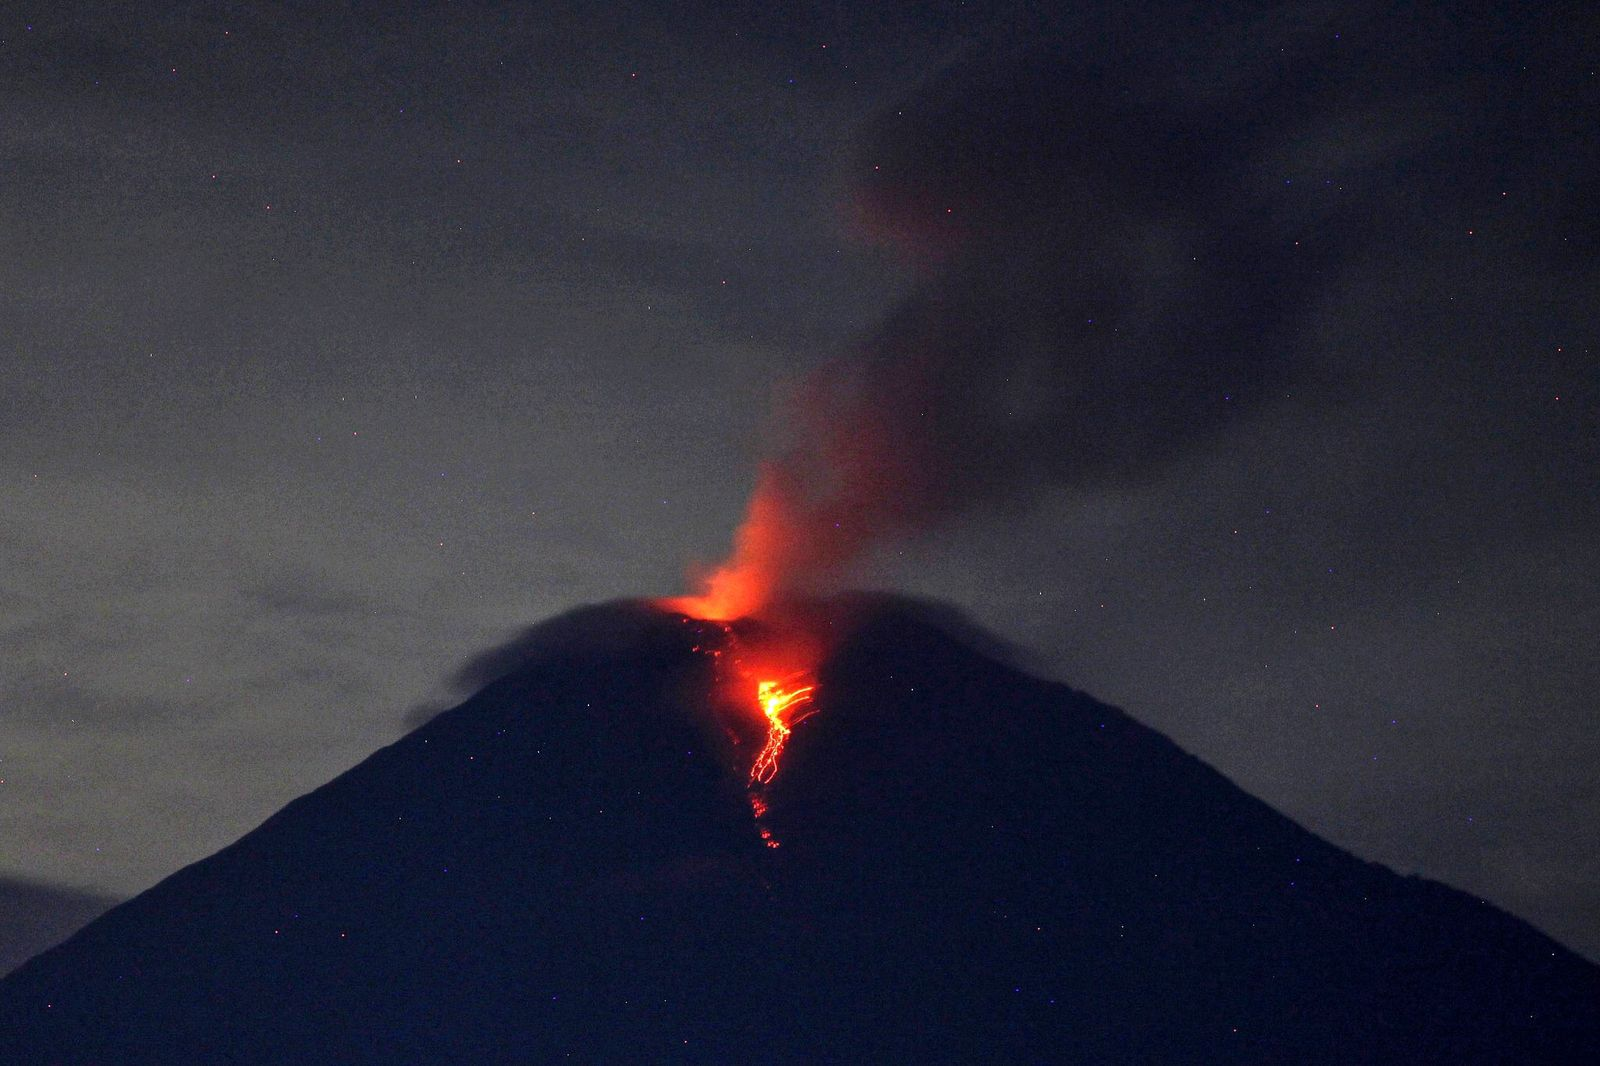 Semeru - chute blocs incandescents - photo 02.12.2020  Xinhua  / Aditya Irawan